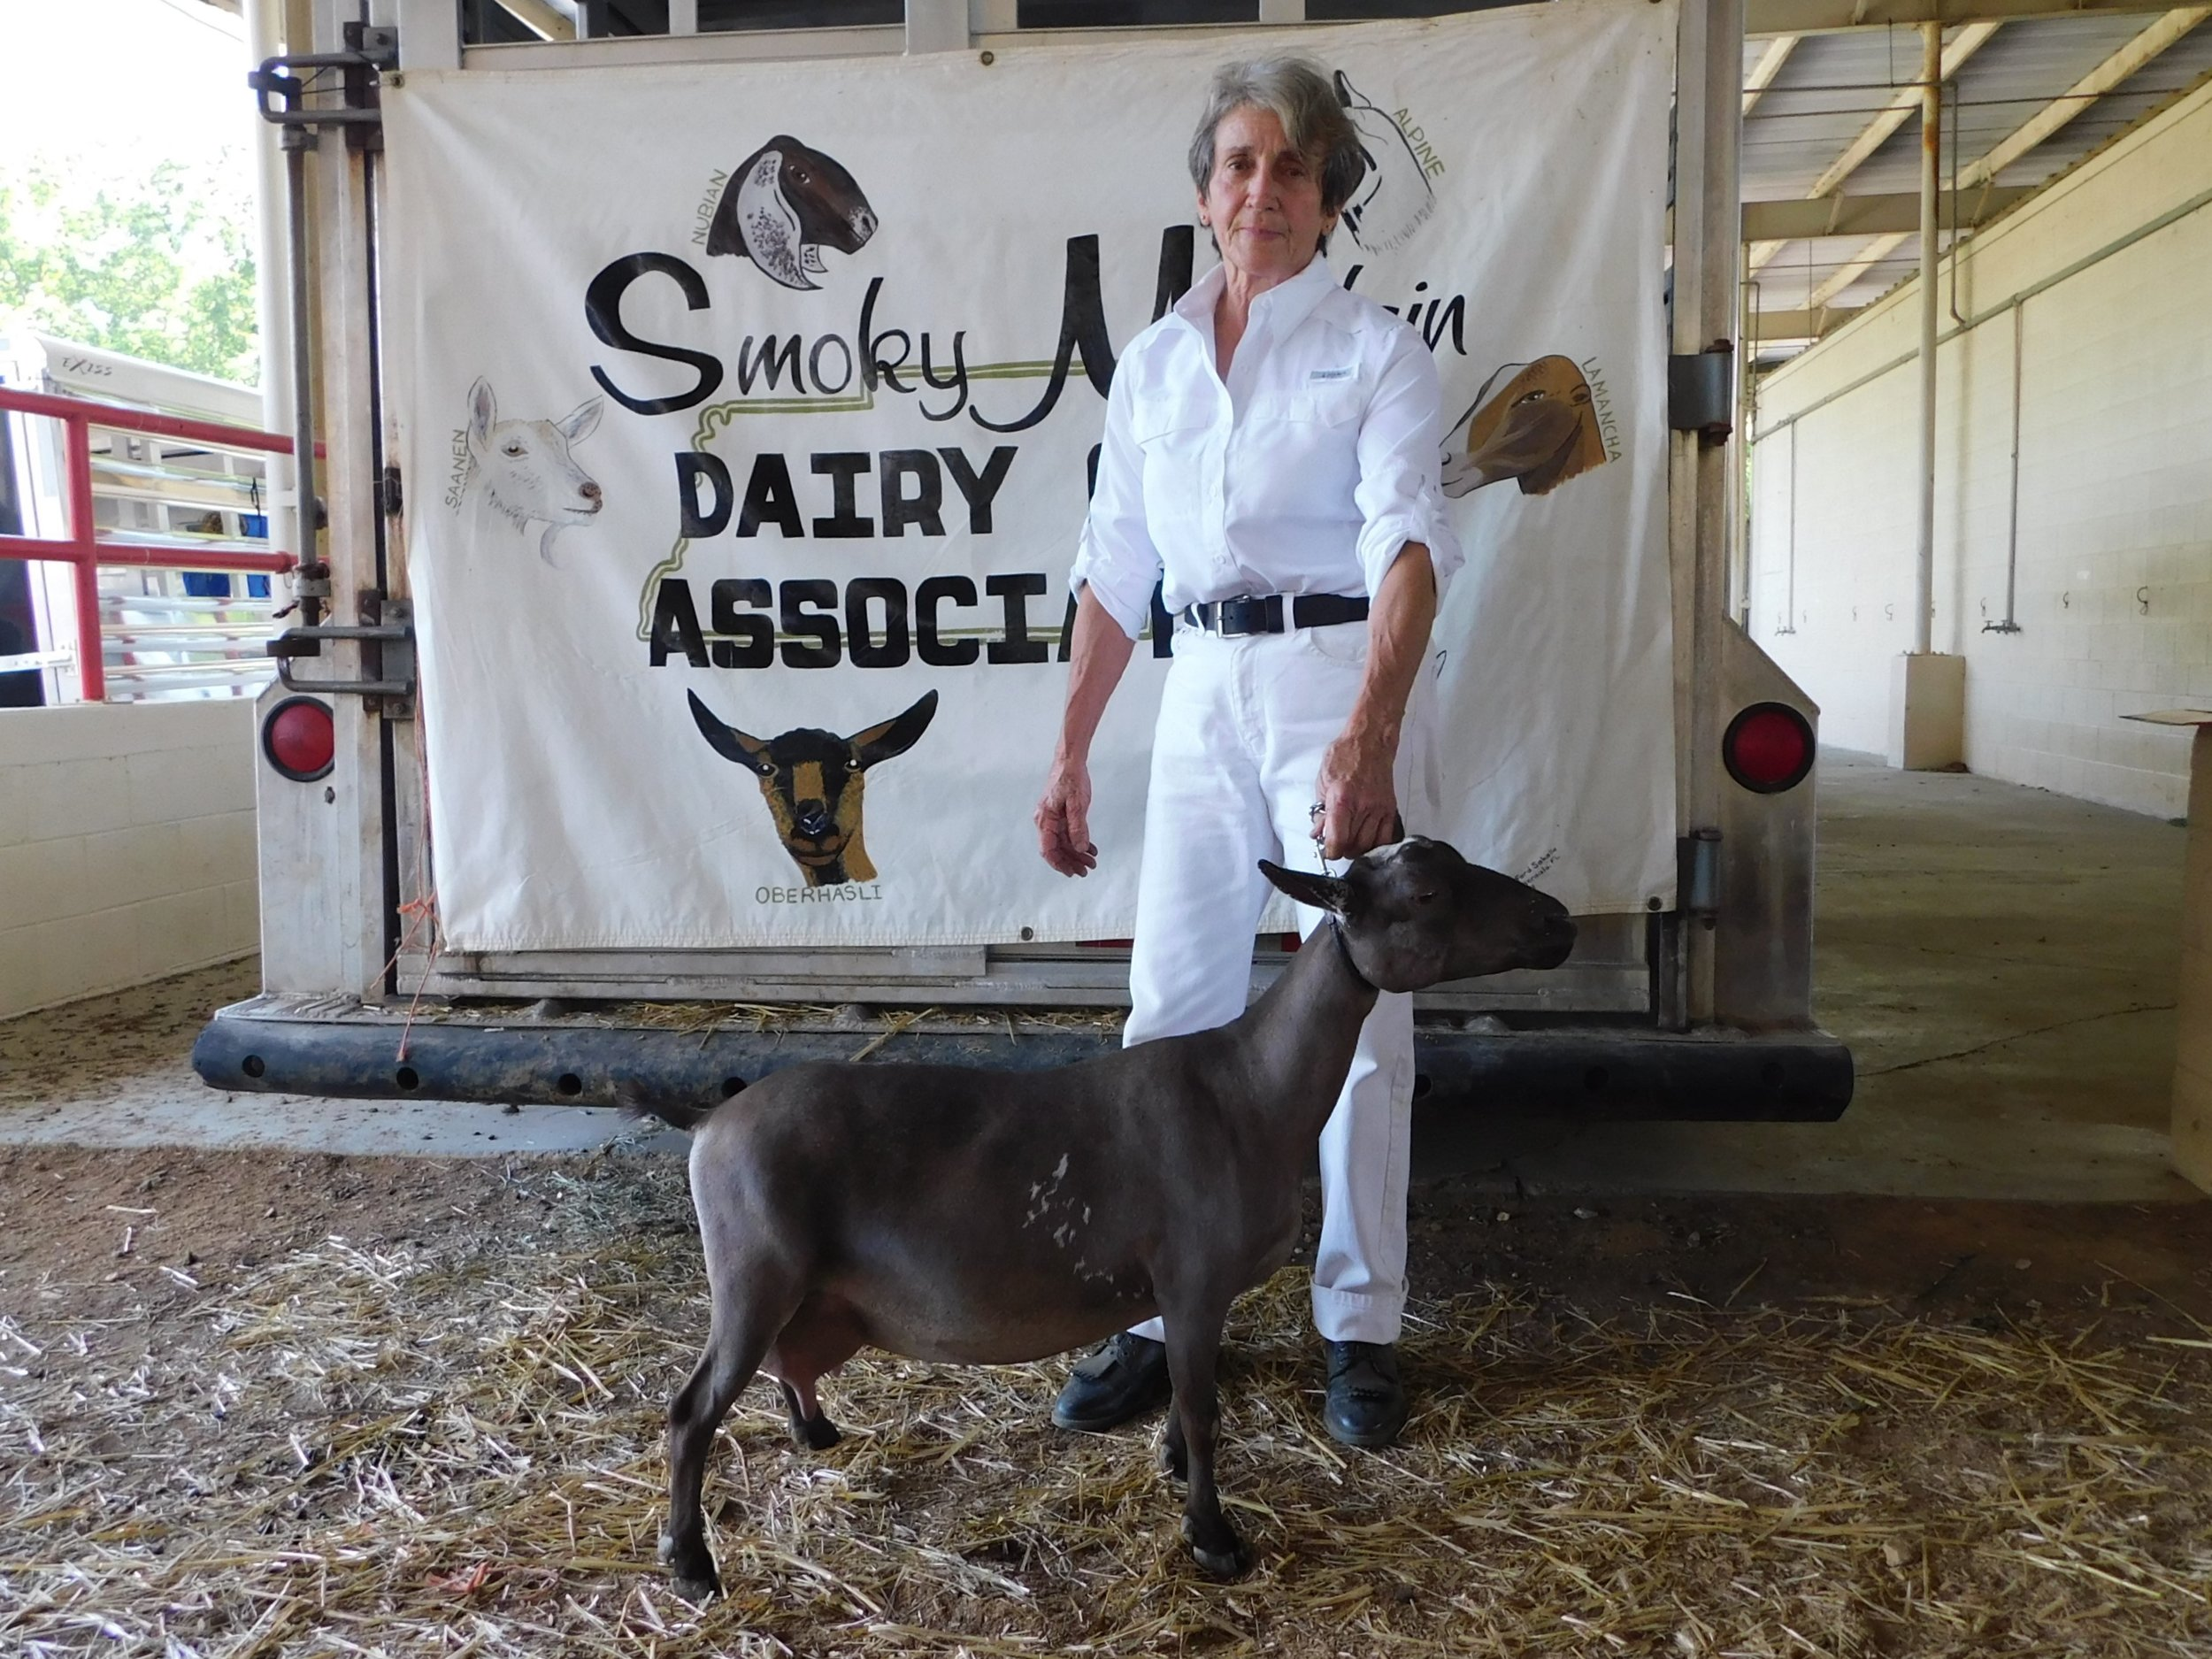 Yadira won two Grands (Ring 2 and 3) at the Smokey Mt. Dairy Goat Association show on May 18, 2019.  Her final leg was won at the May Spring Fling in Lebanon, when she came in Reserve to a doe who was already a Finished Champion.